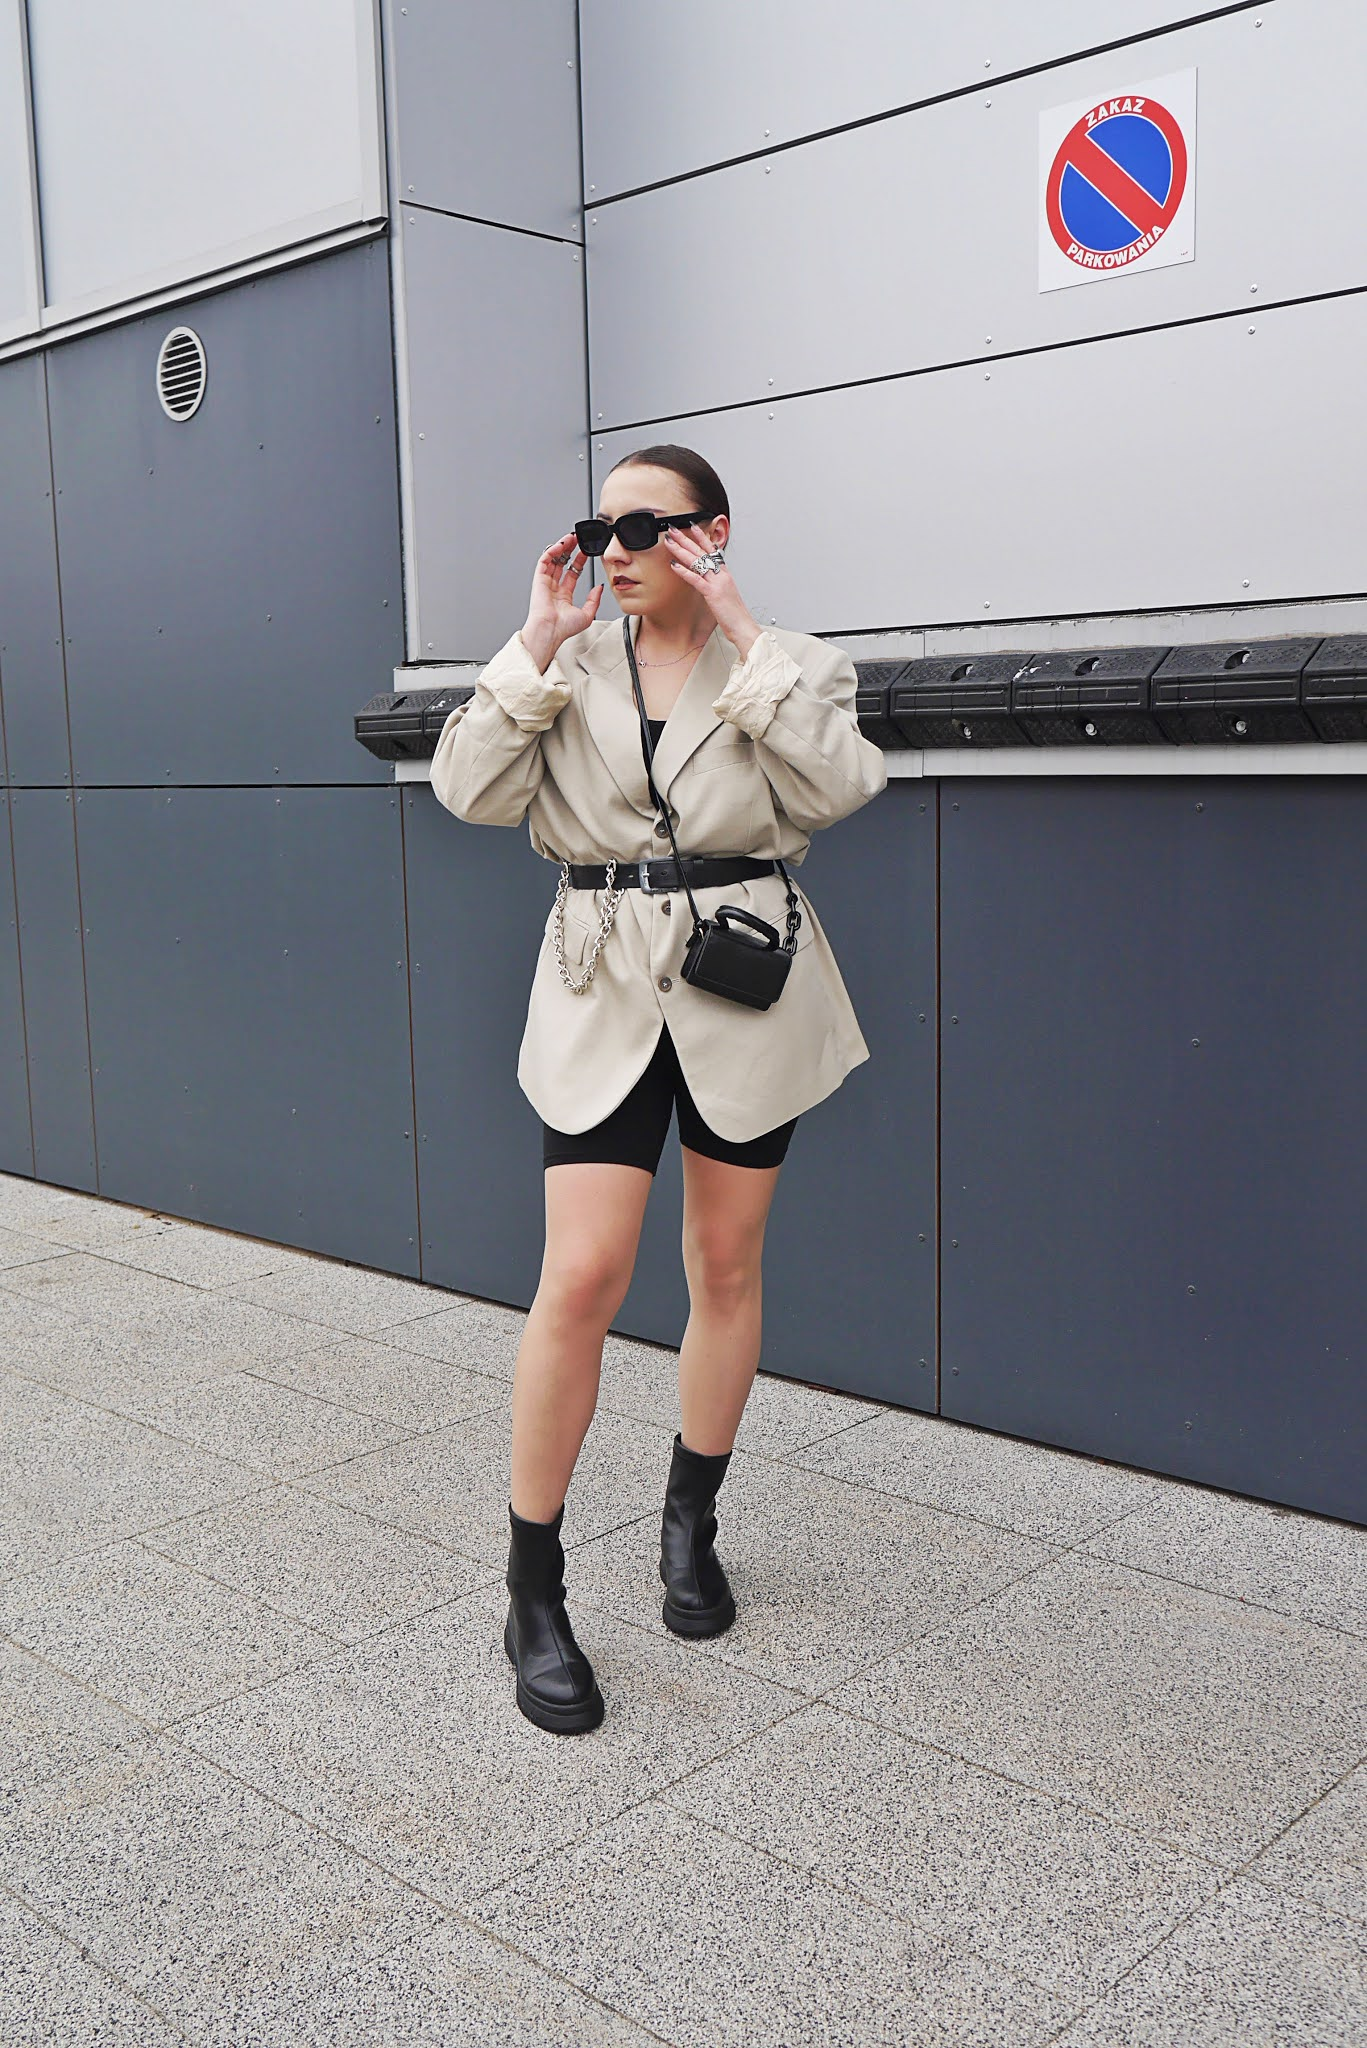 fashion blogger oversize baige blazer cycles shorts black boots aliexpress sunglasses gate inspiration ootd outfit look